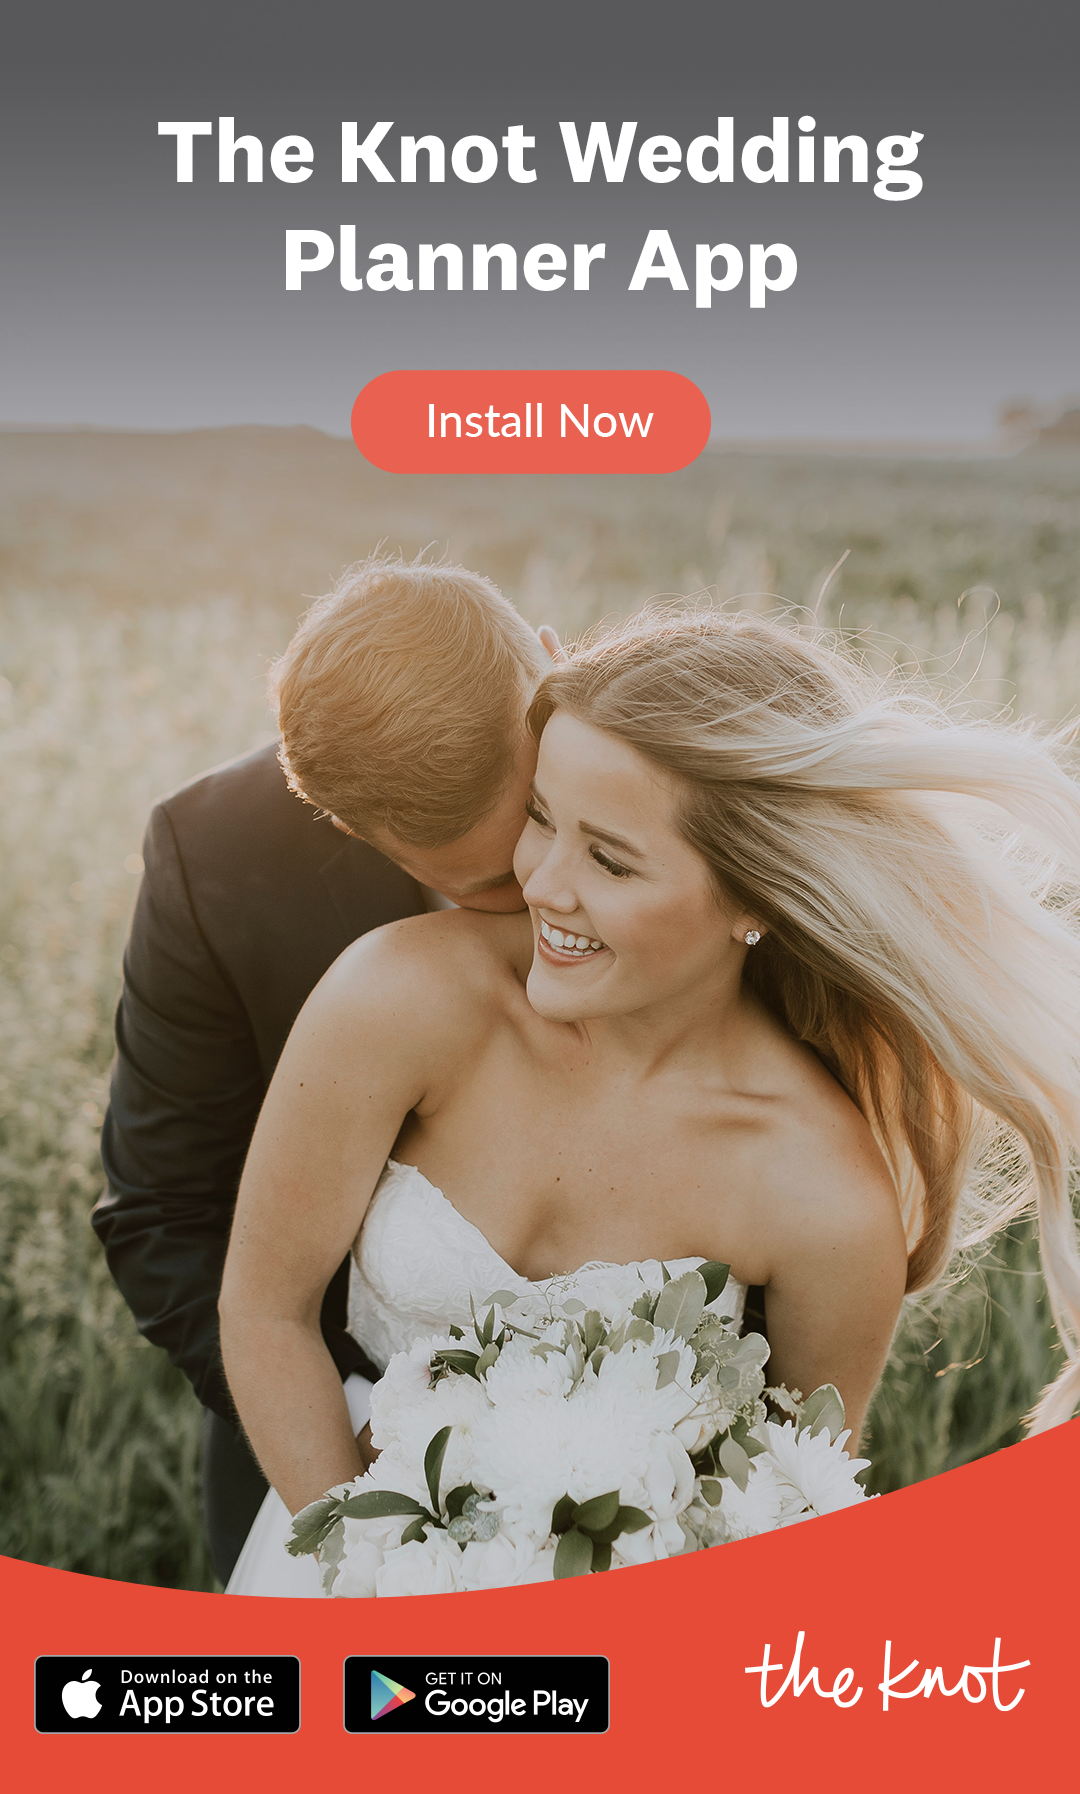 The Knot Wedding Planner app makes planning on the go